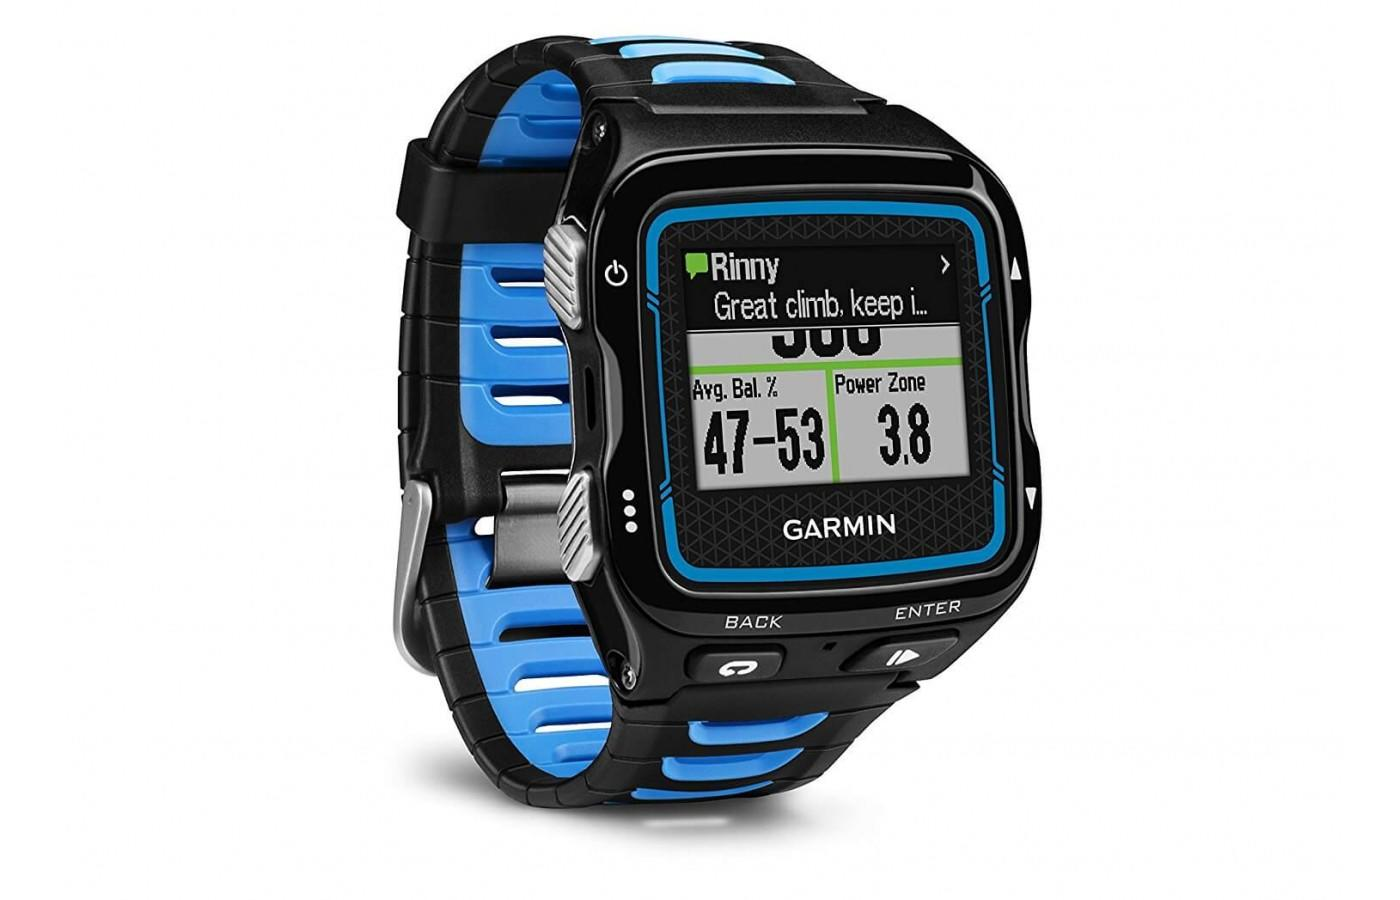 The band on the Garmin Forerunner 920 XT is very unique and cool